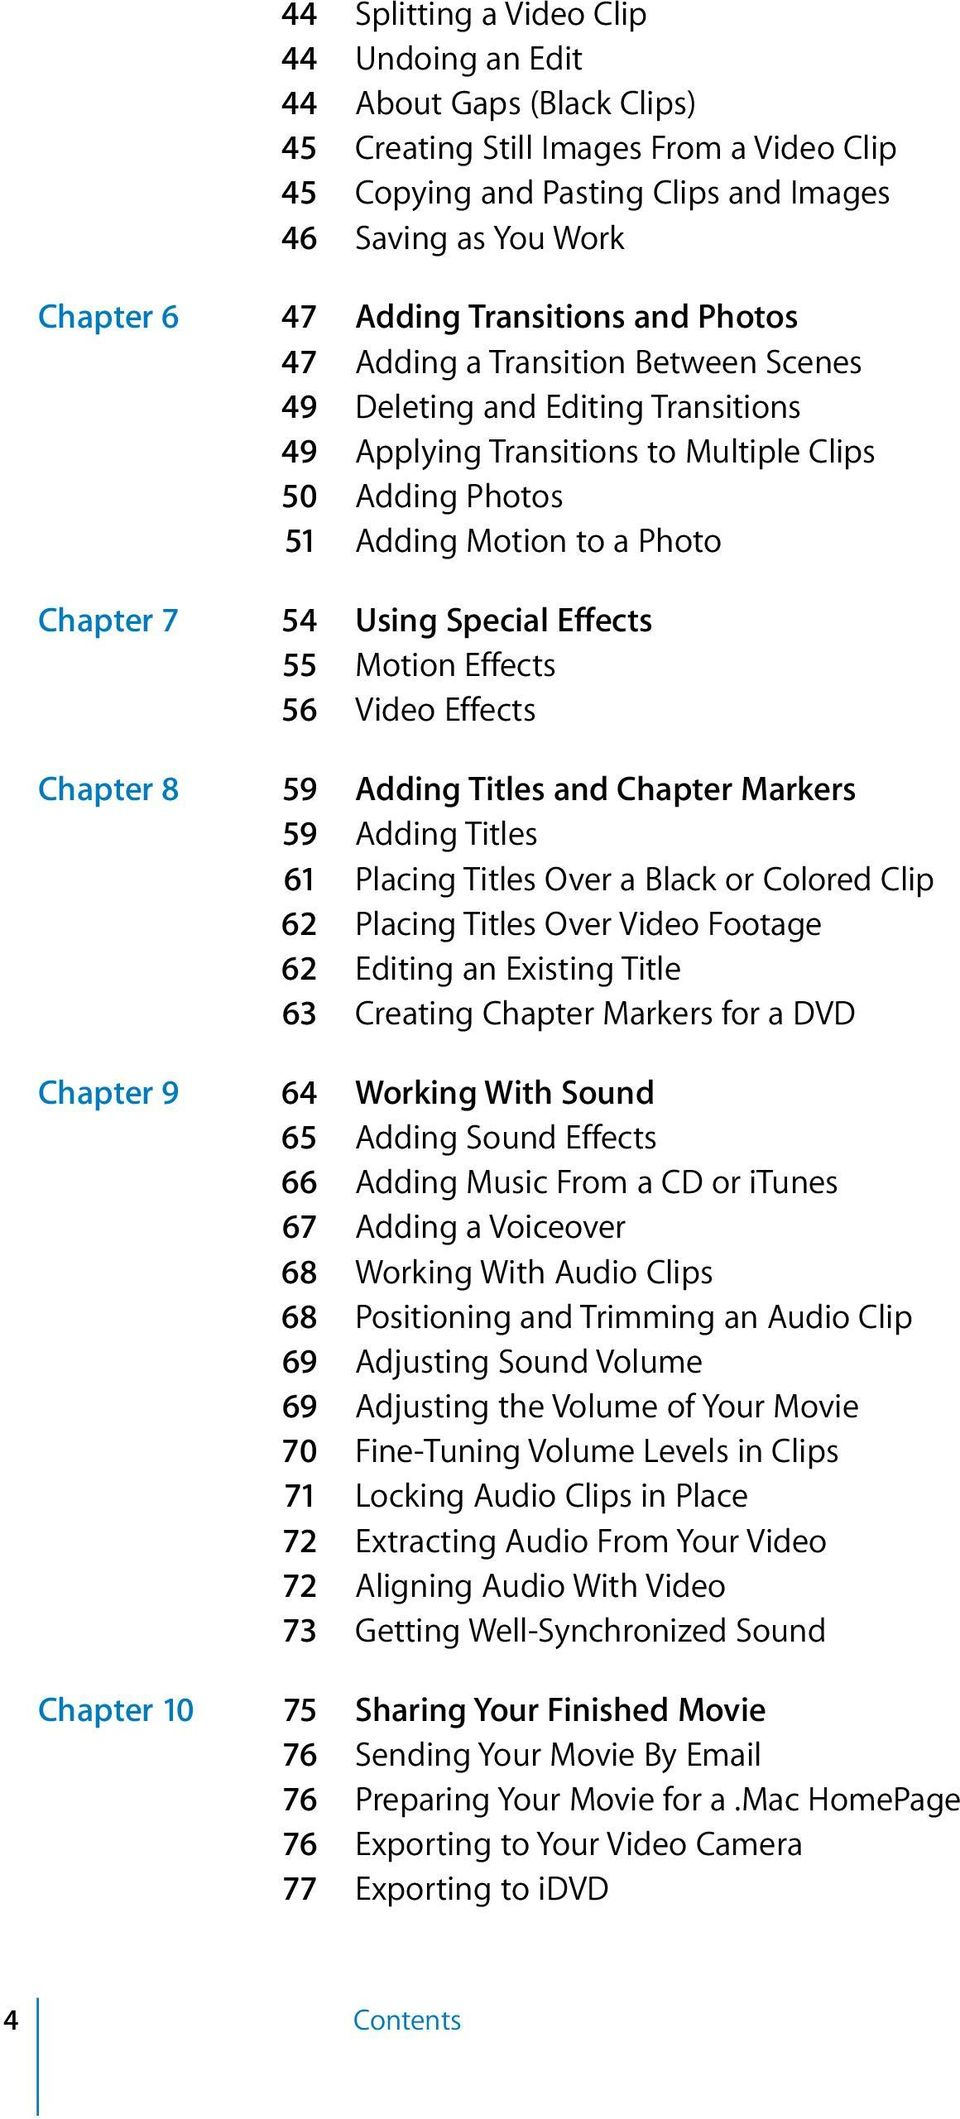 Using Special Effects 55 Motion Effects 56 Video Effects Chapter 8 59 Adding Titles and Chapter Markers 59 Adding Titles 61 Placing Titles Over a Black or Colored Clip 62 Placing Titles Over Video